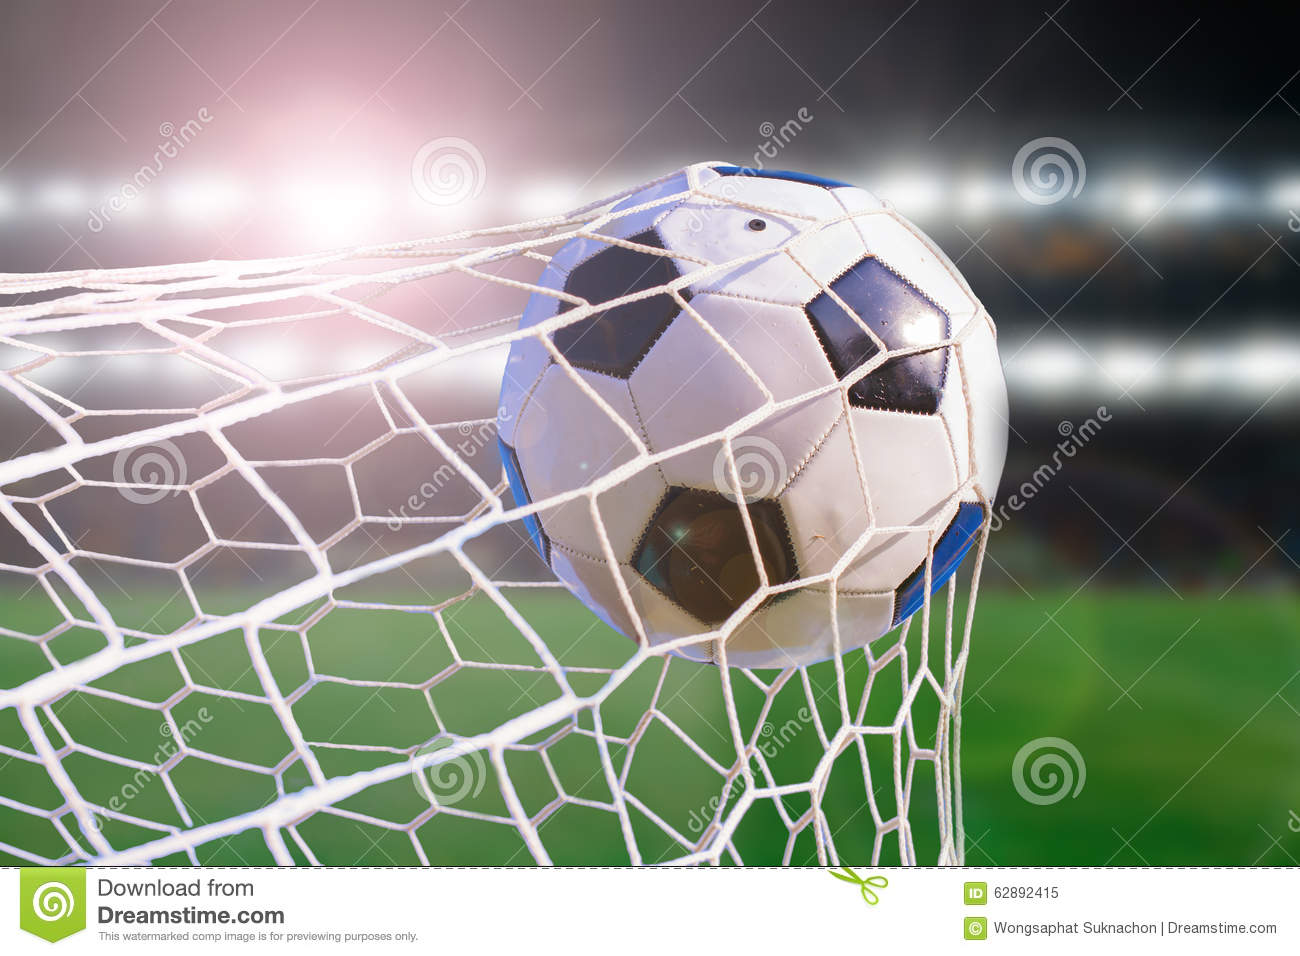 The Soccer Ball Hit Into The Net: Soccer Ball Hit The Net Stock Photo